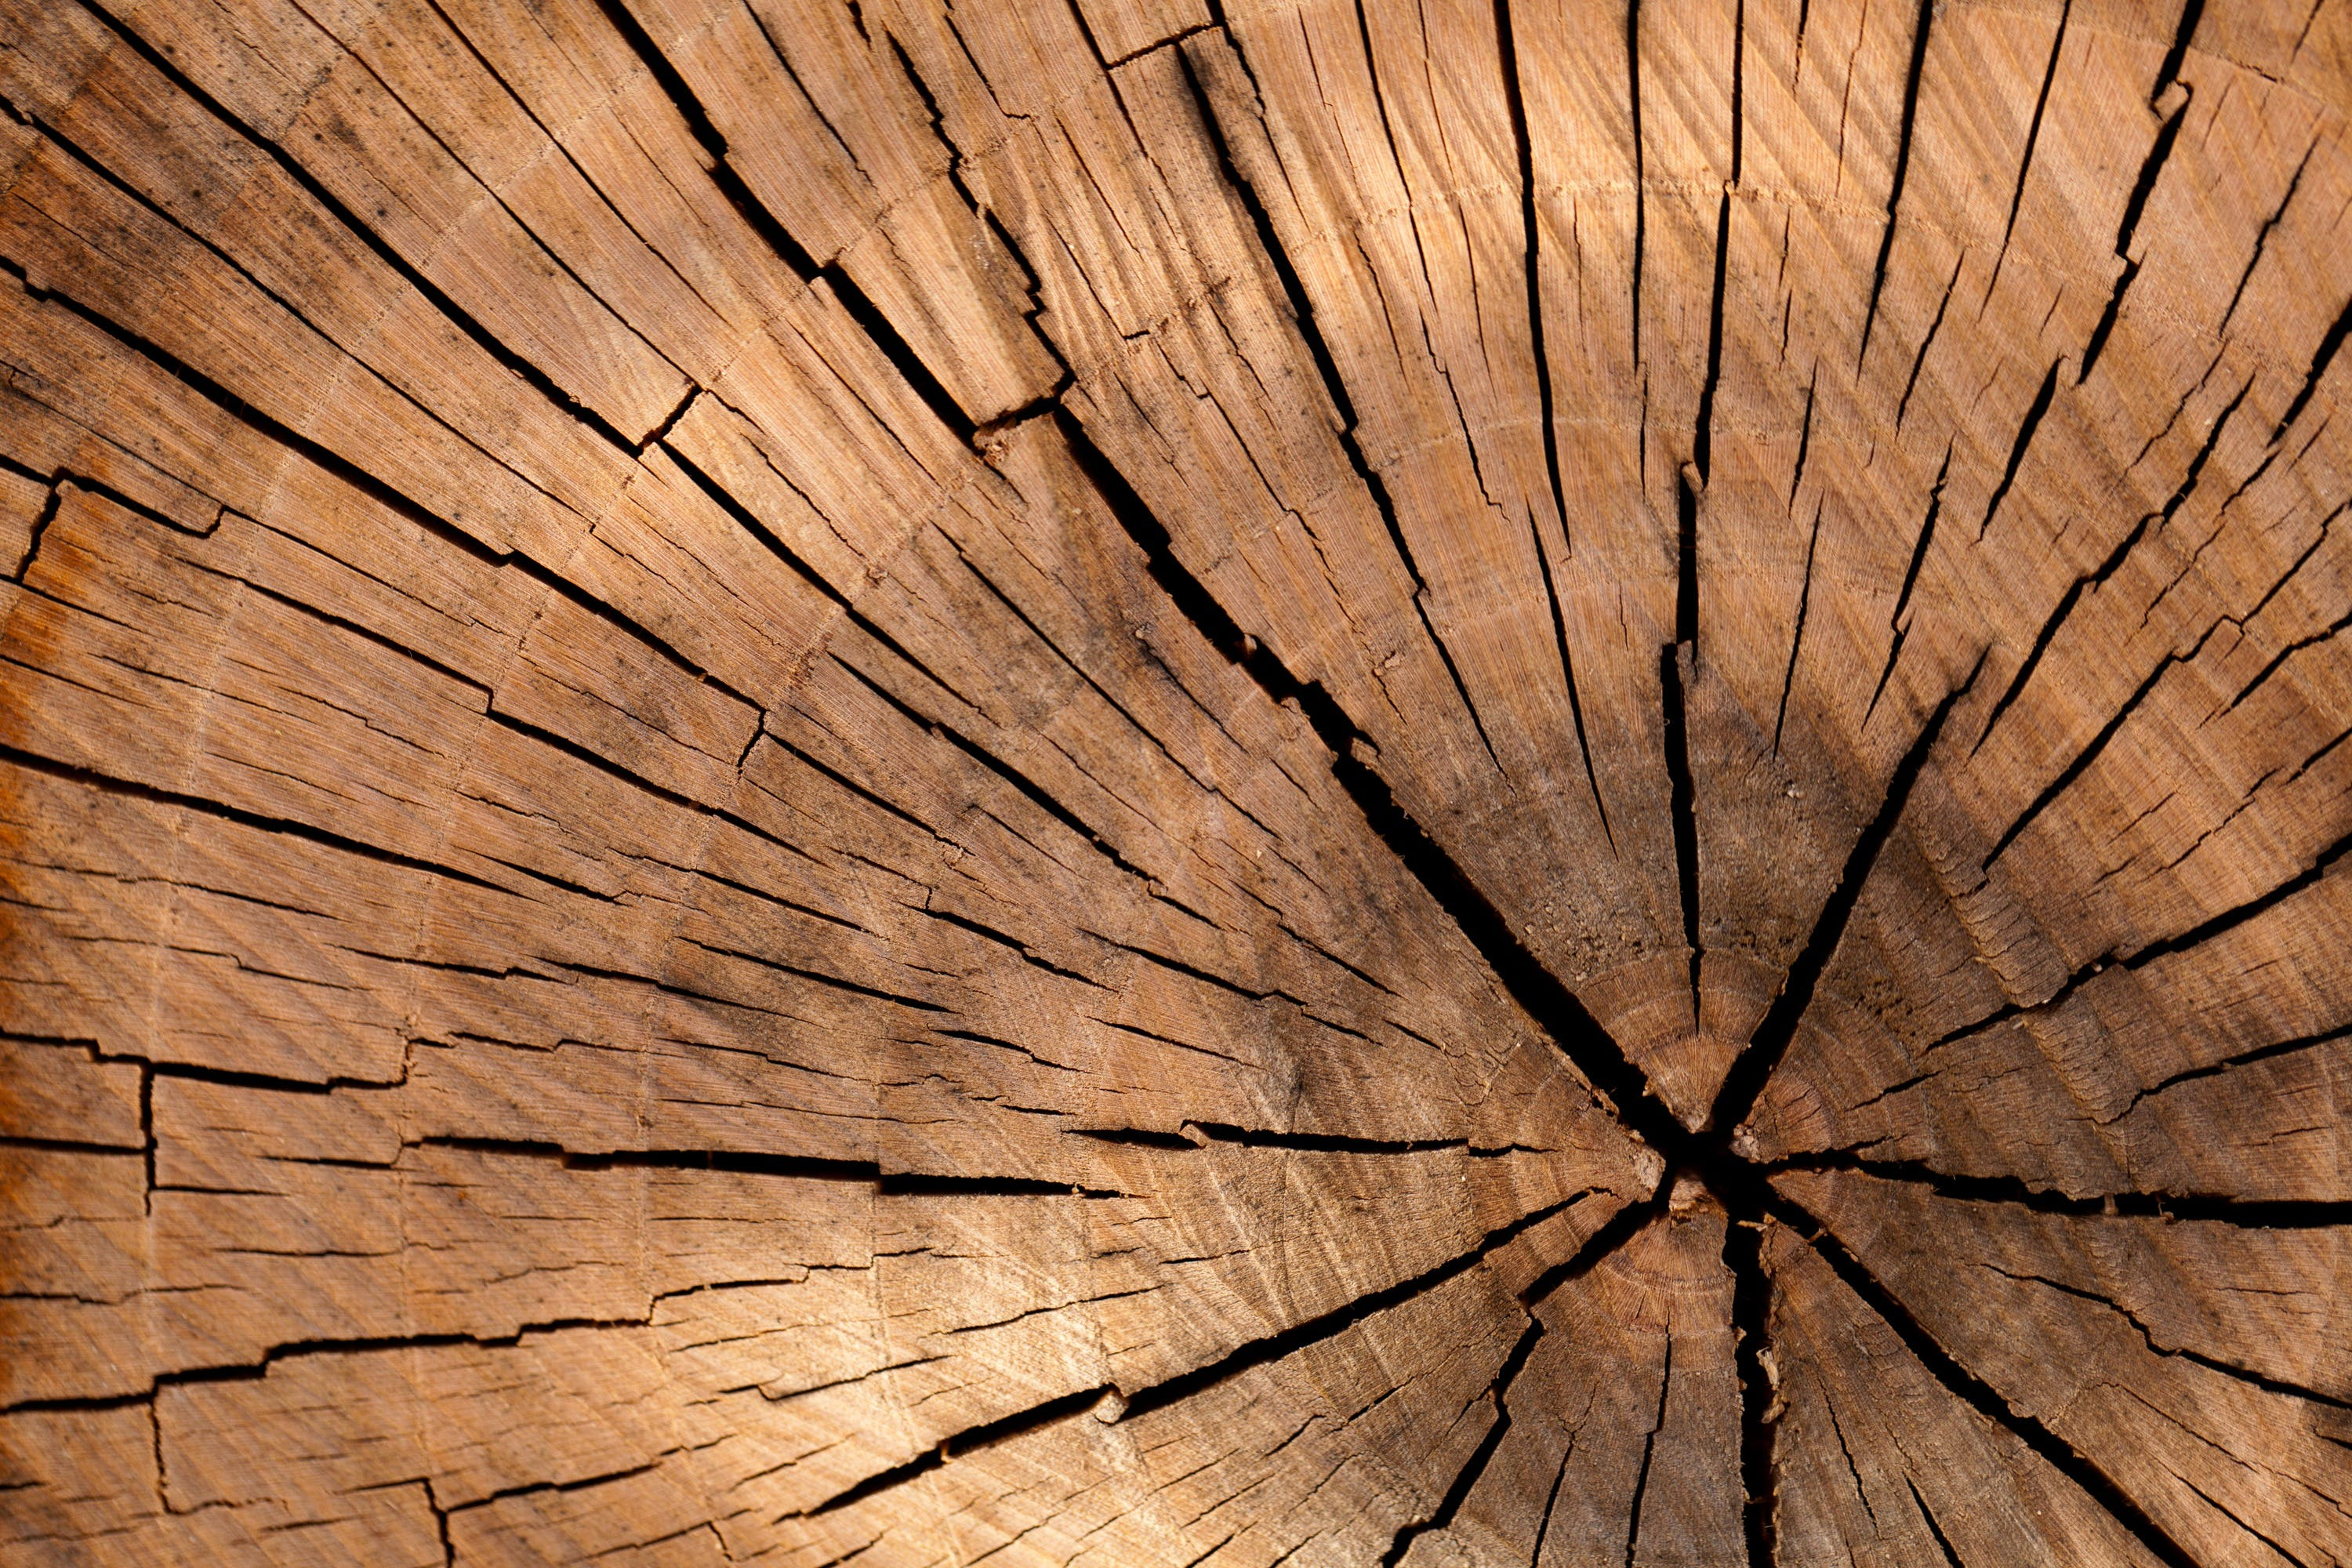 Closeup Photography of Brown Wood Slice